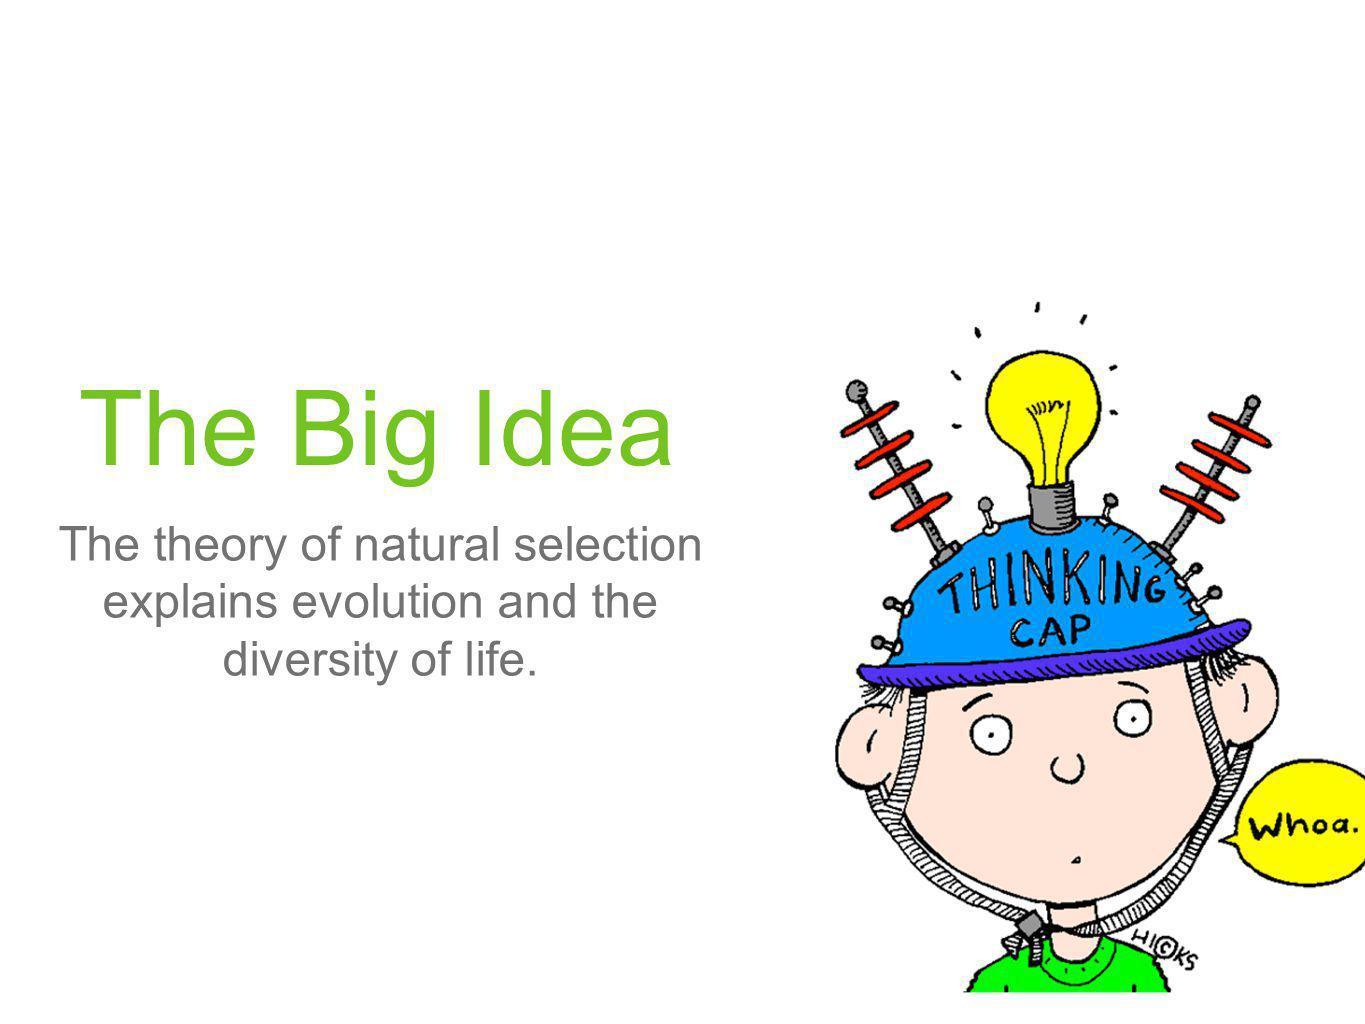 The Big Idea The theory of natural selection explains evolution and the diversity of life.